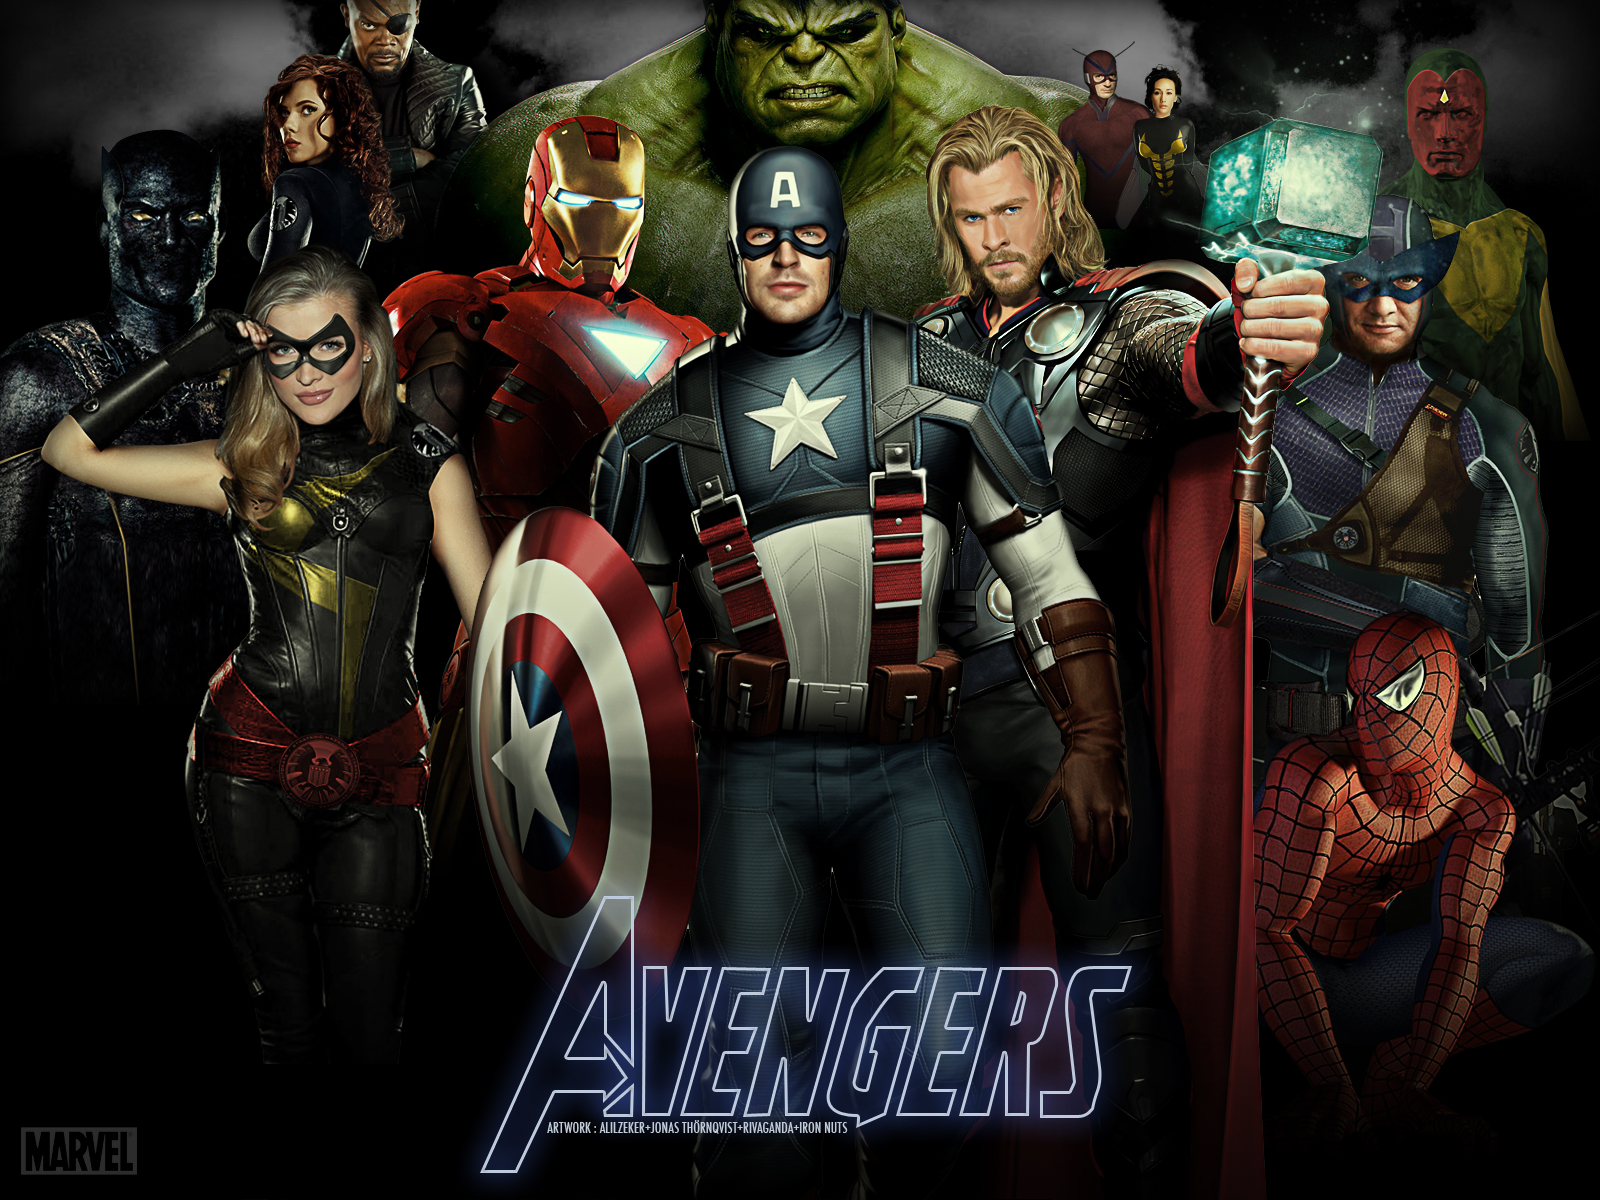 The Avengers Wallpapers Games PC Downloads 1600x1200